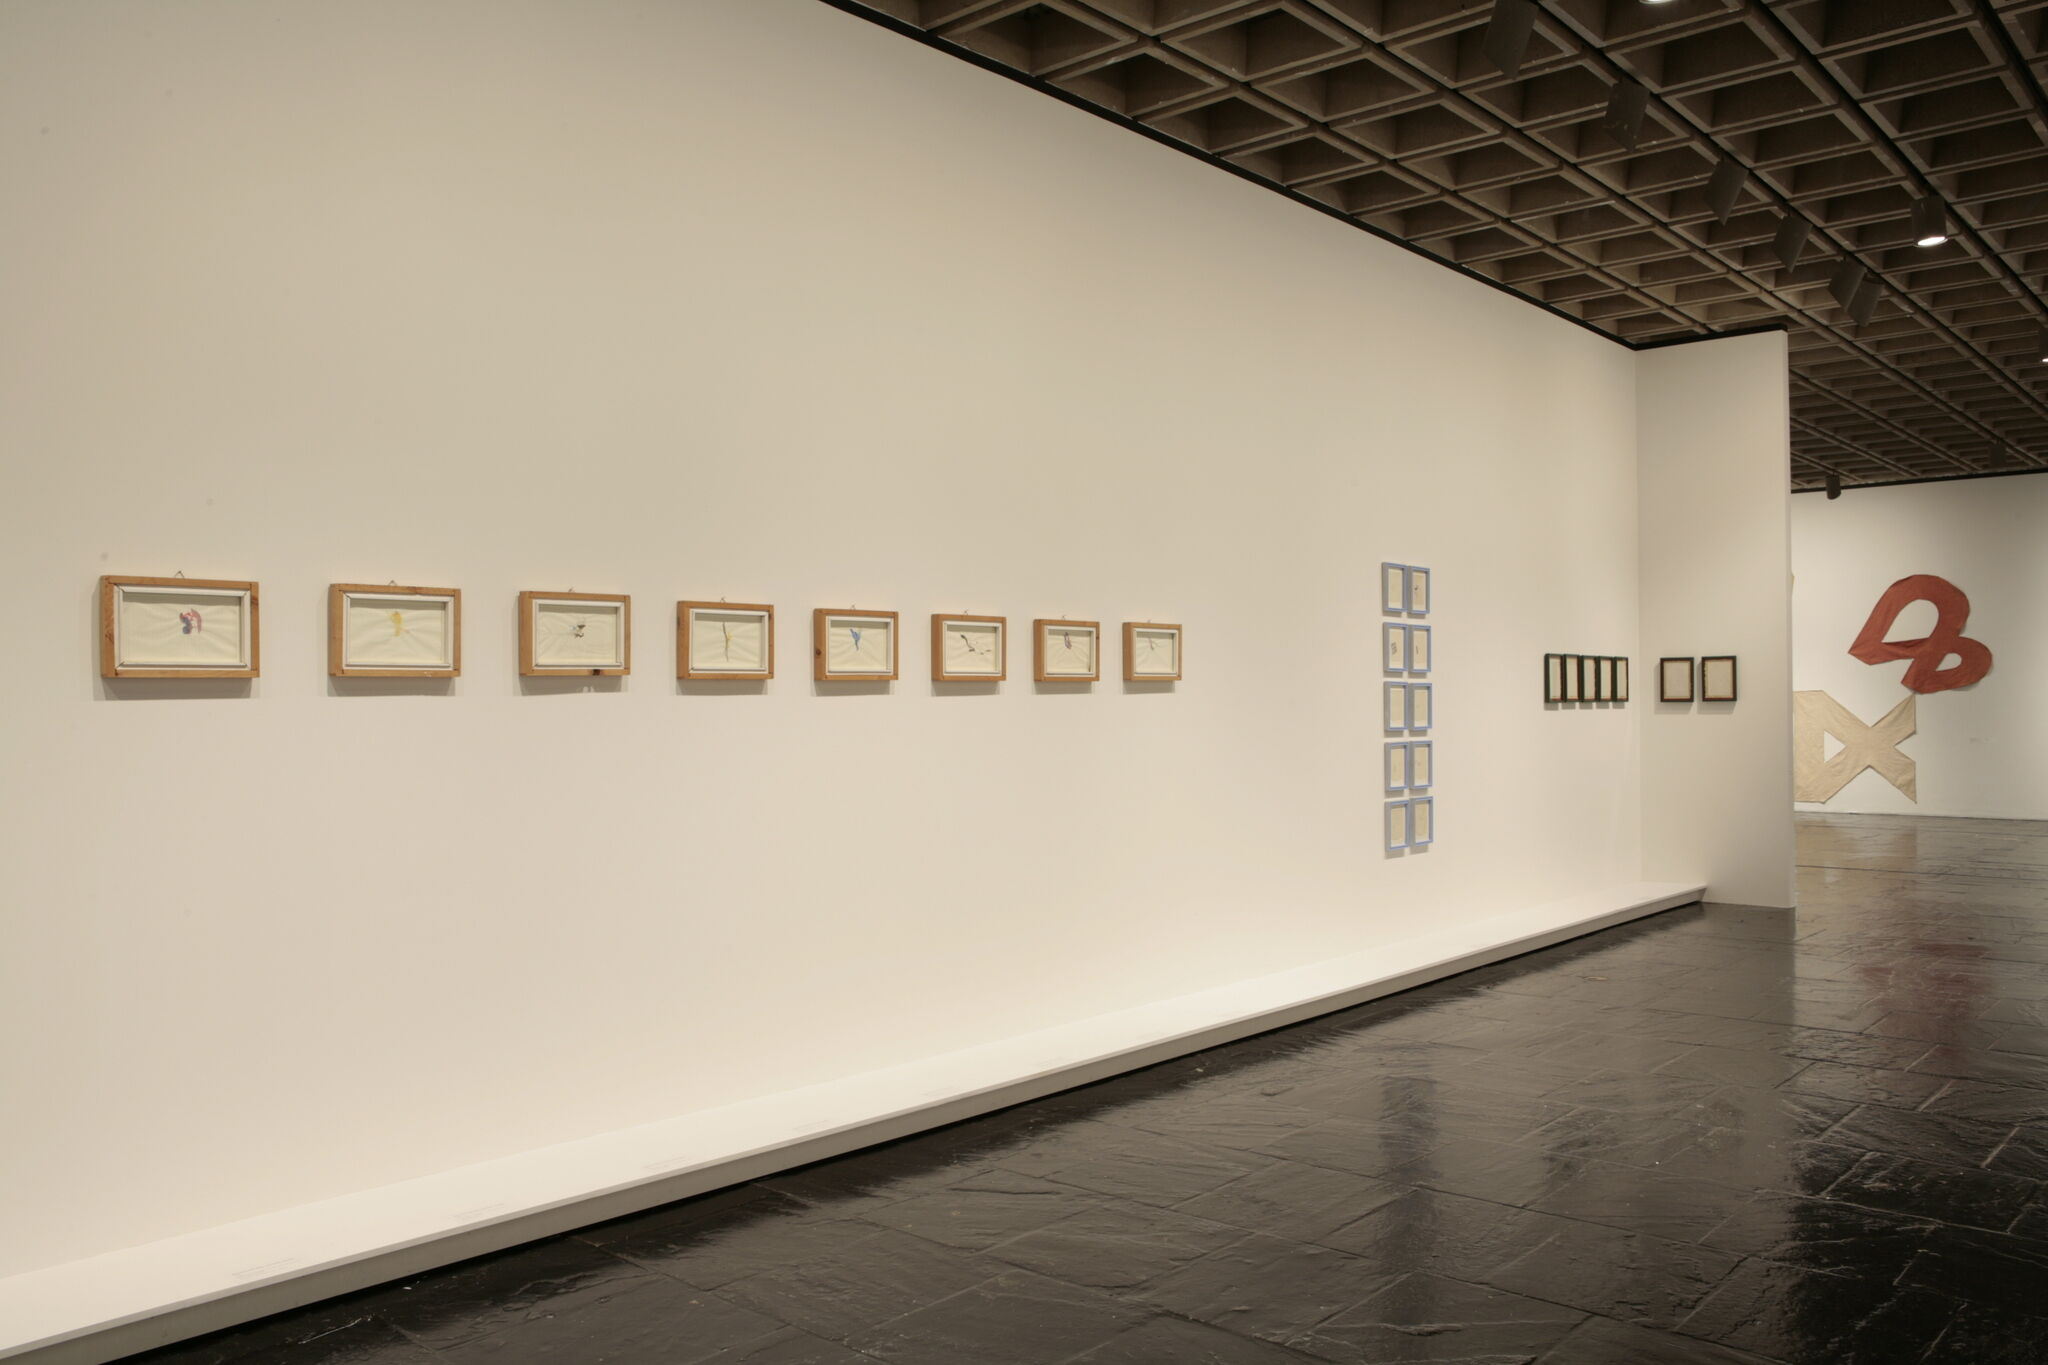 A wall in a gallery filled with small frames displaying prints.